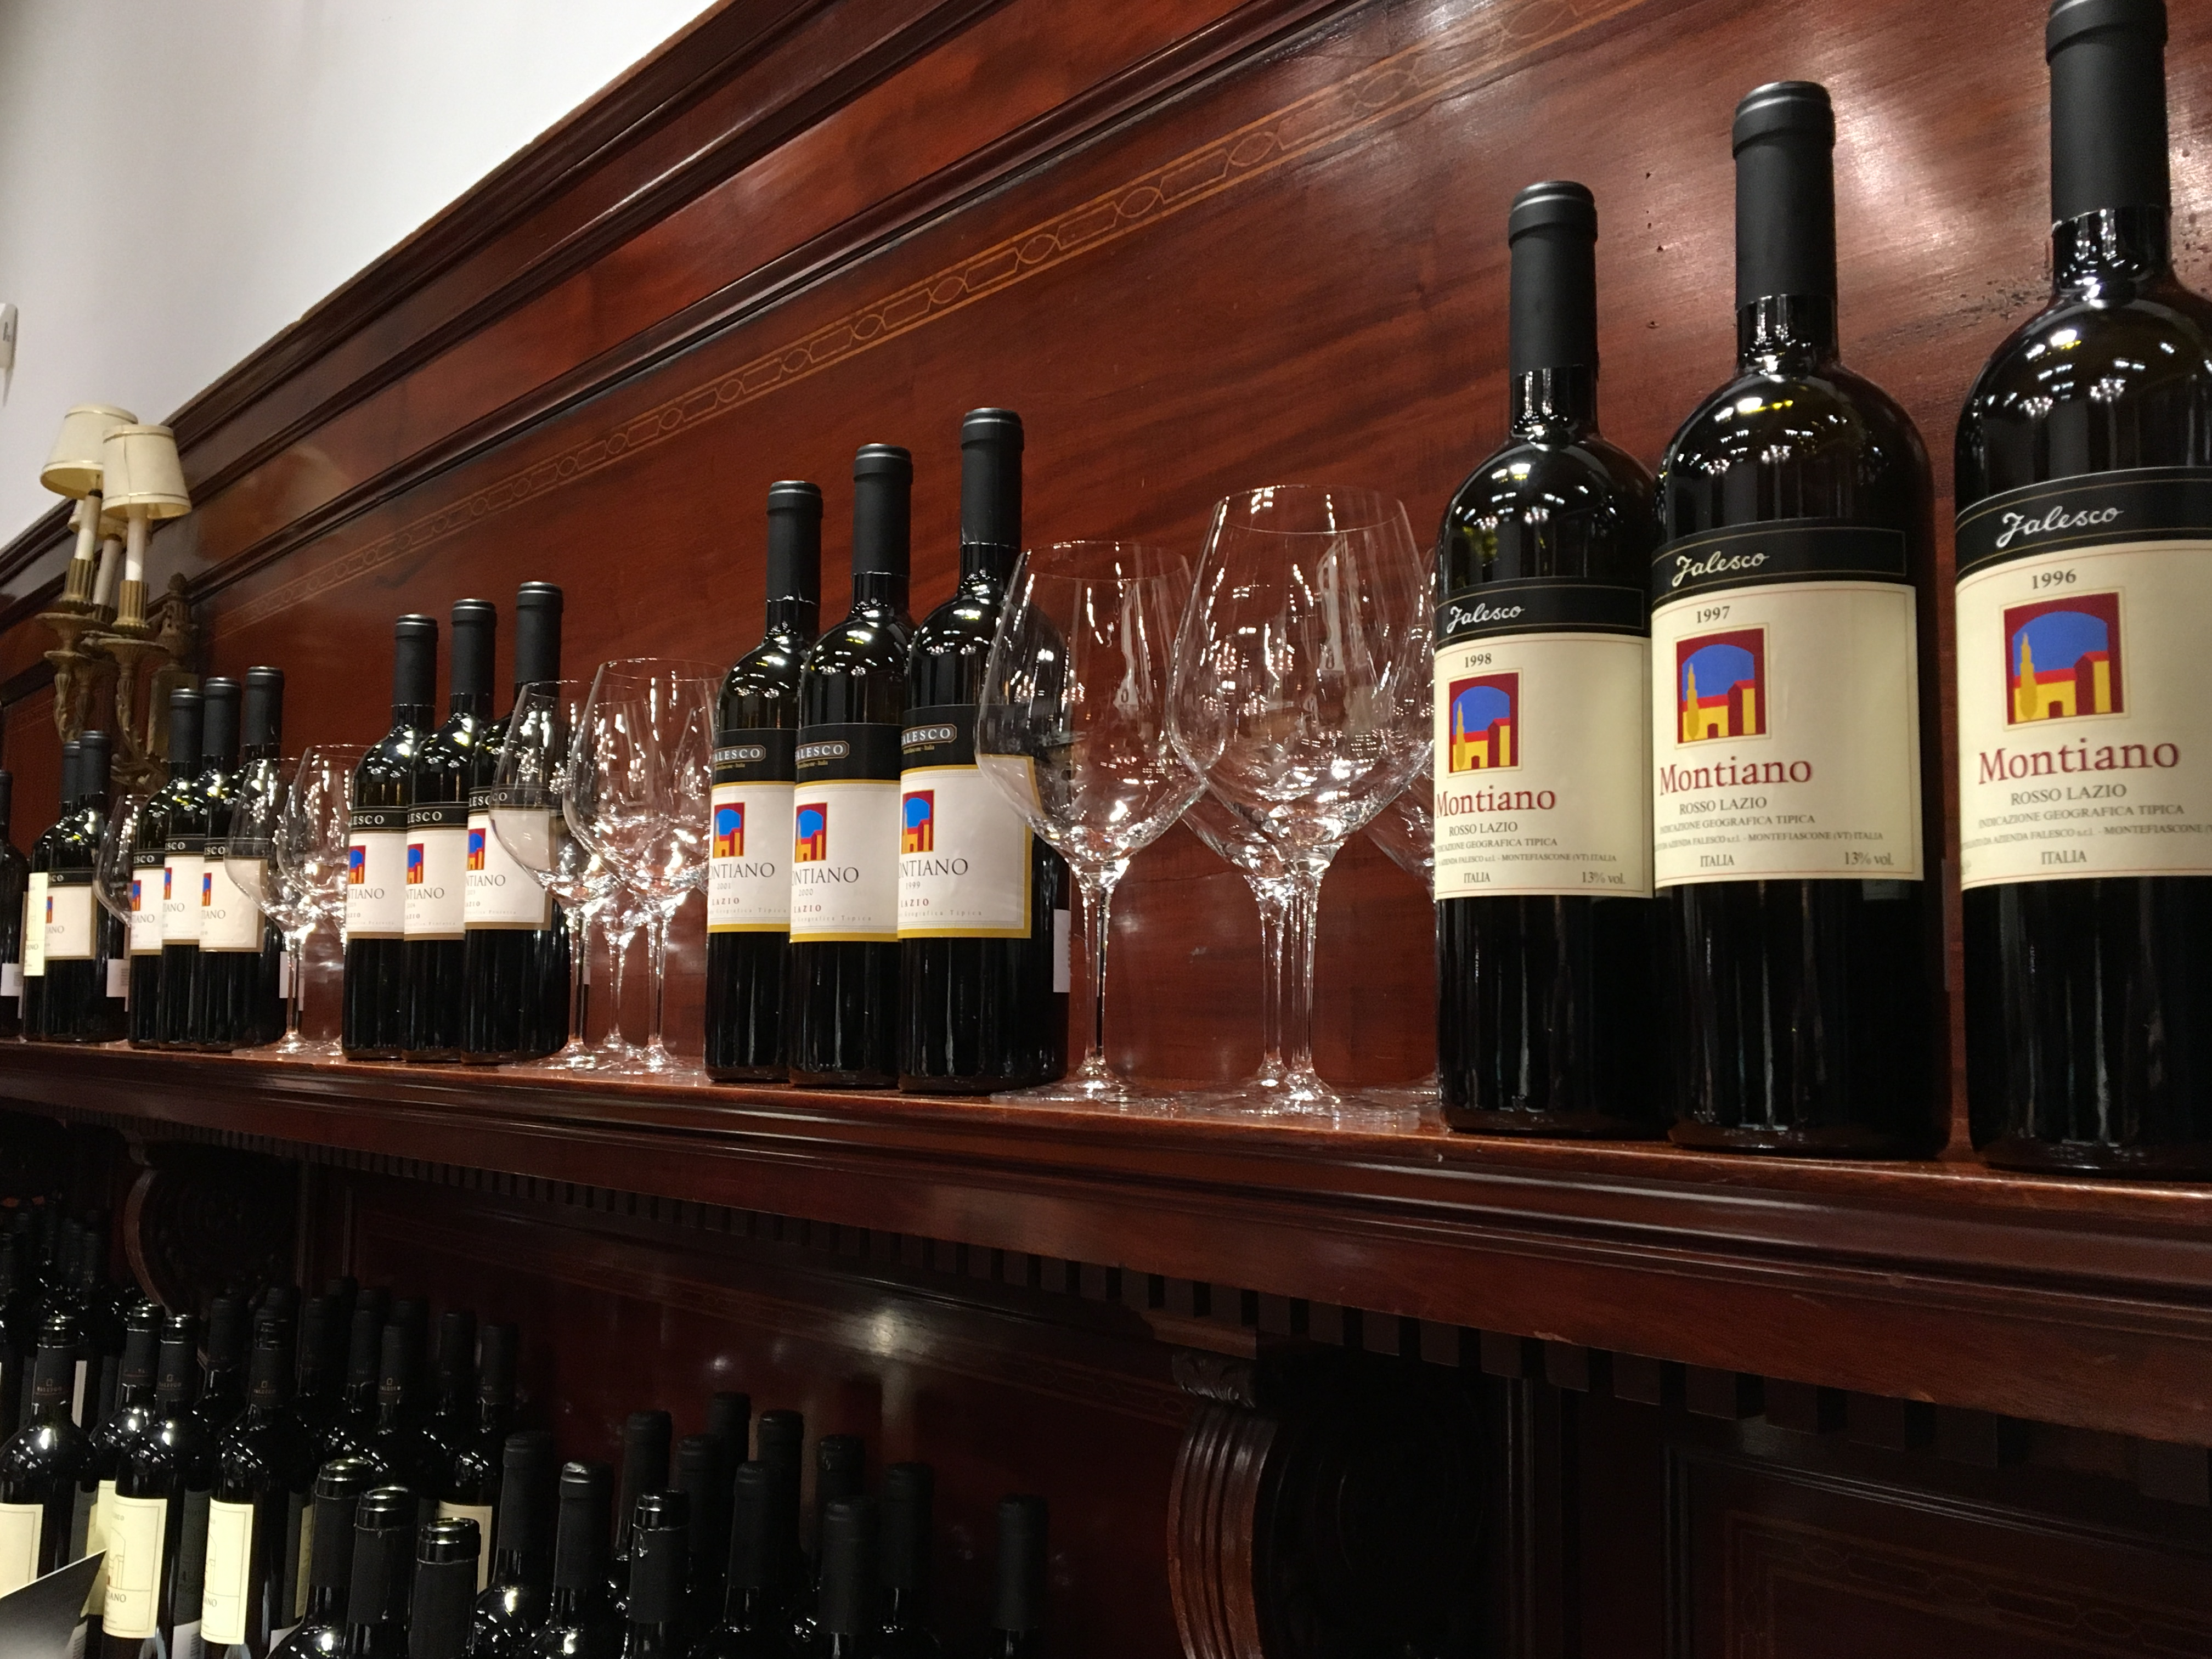 The eveningu0027s wines u2013 vintages 2001 20015 2010 2013 u2013 all showed great depth with gorgeous layers of ripe red fruit notes of spice and cocoa. & Wine Style Fashion Collide Celebrating 20 Vintages of Falesco ...